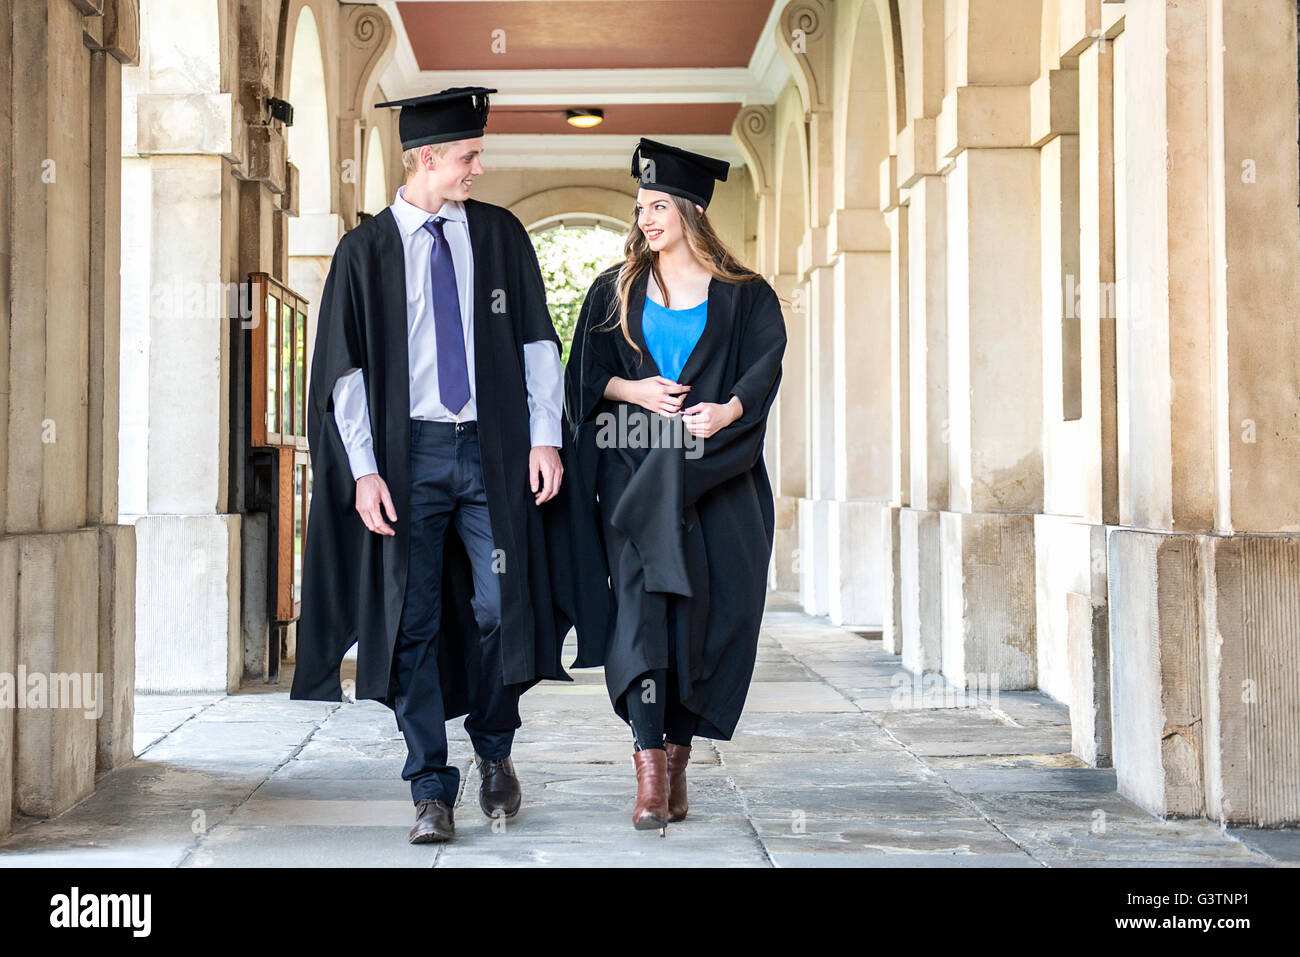 Two students in graduation gowns walking outside a building at Cambridge University. - Stock Image